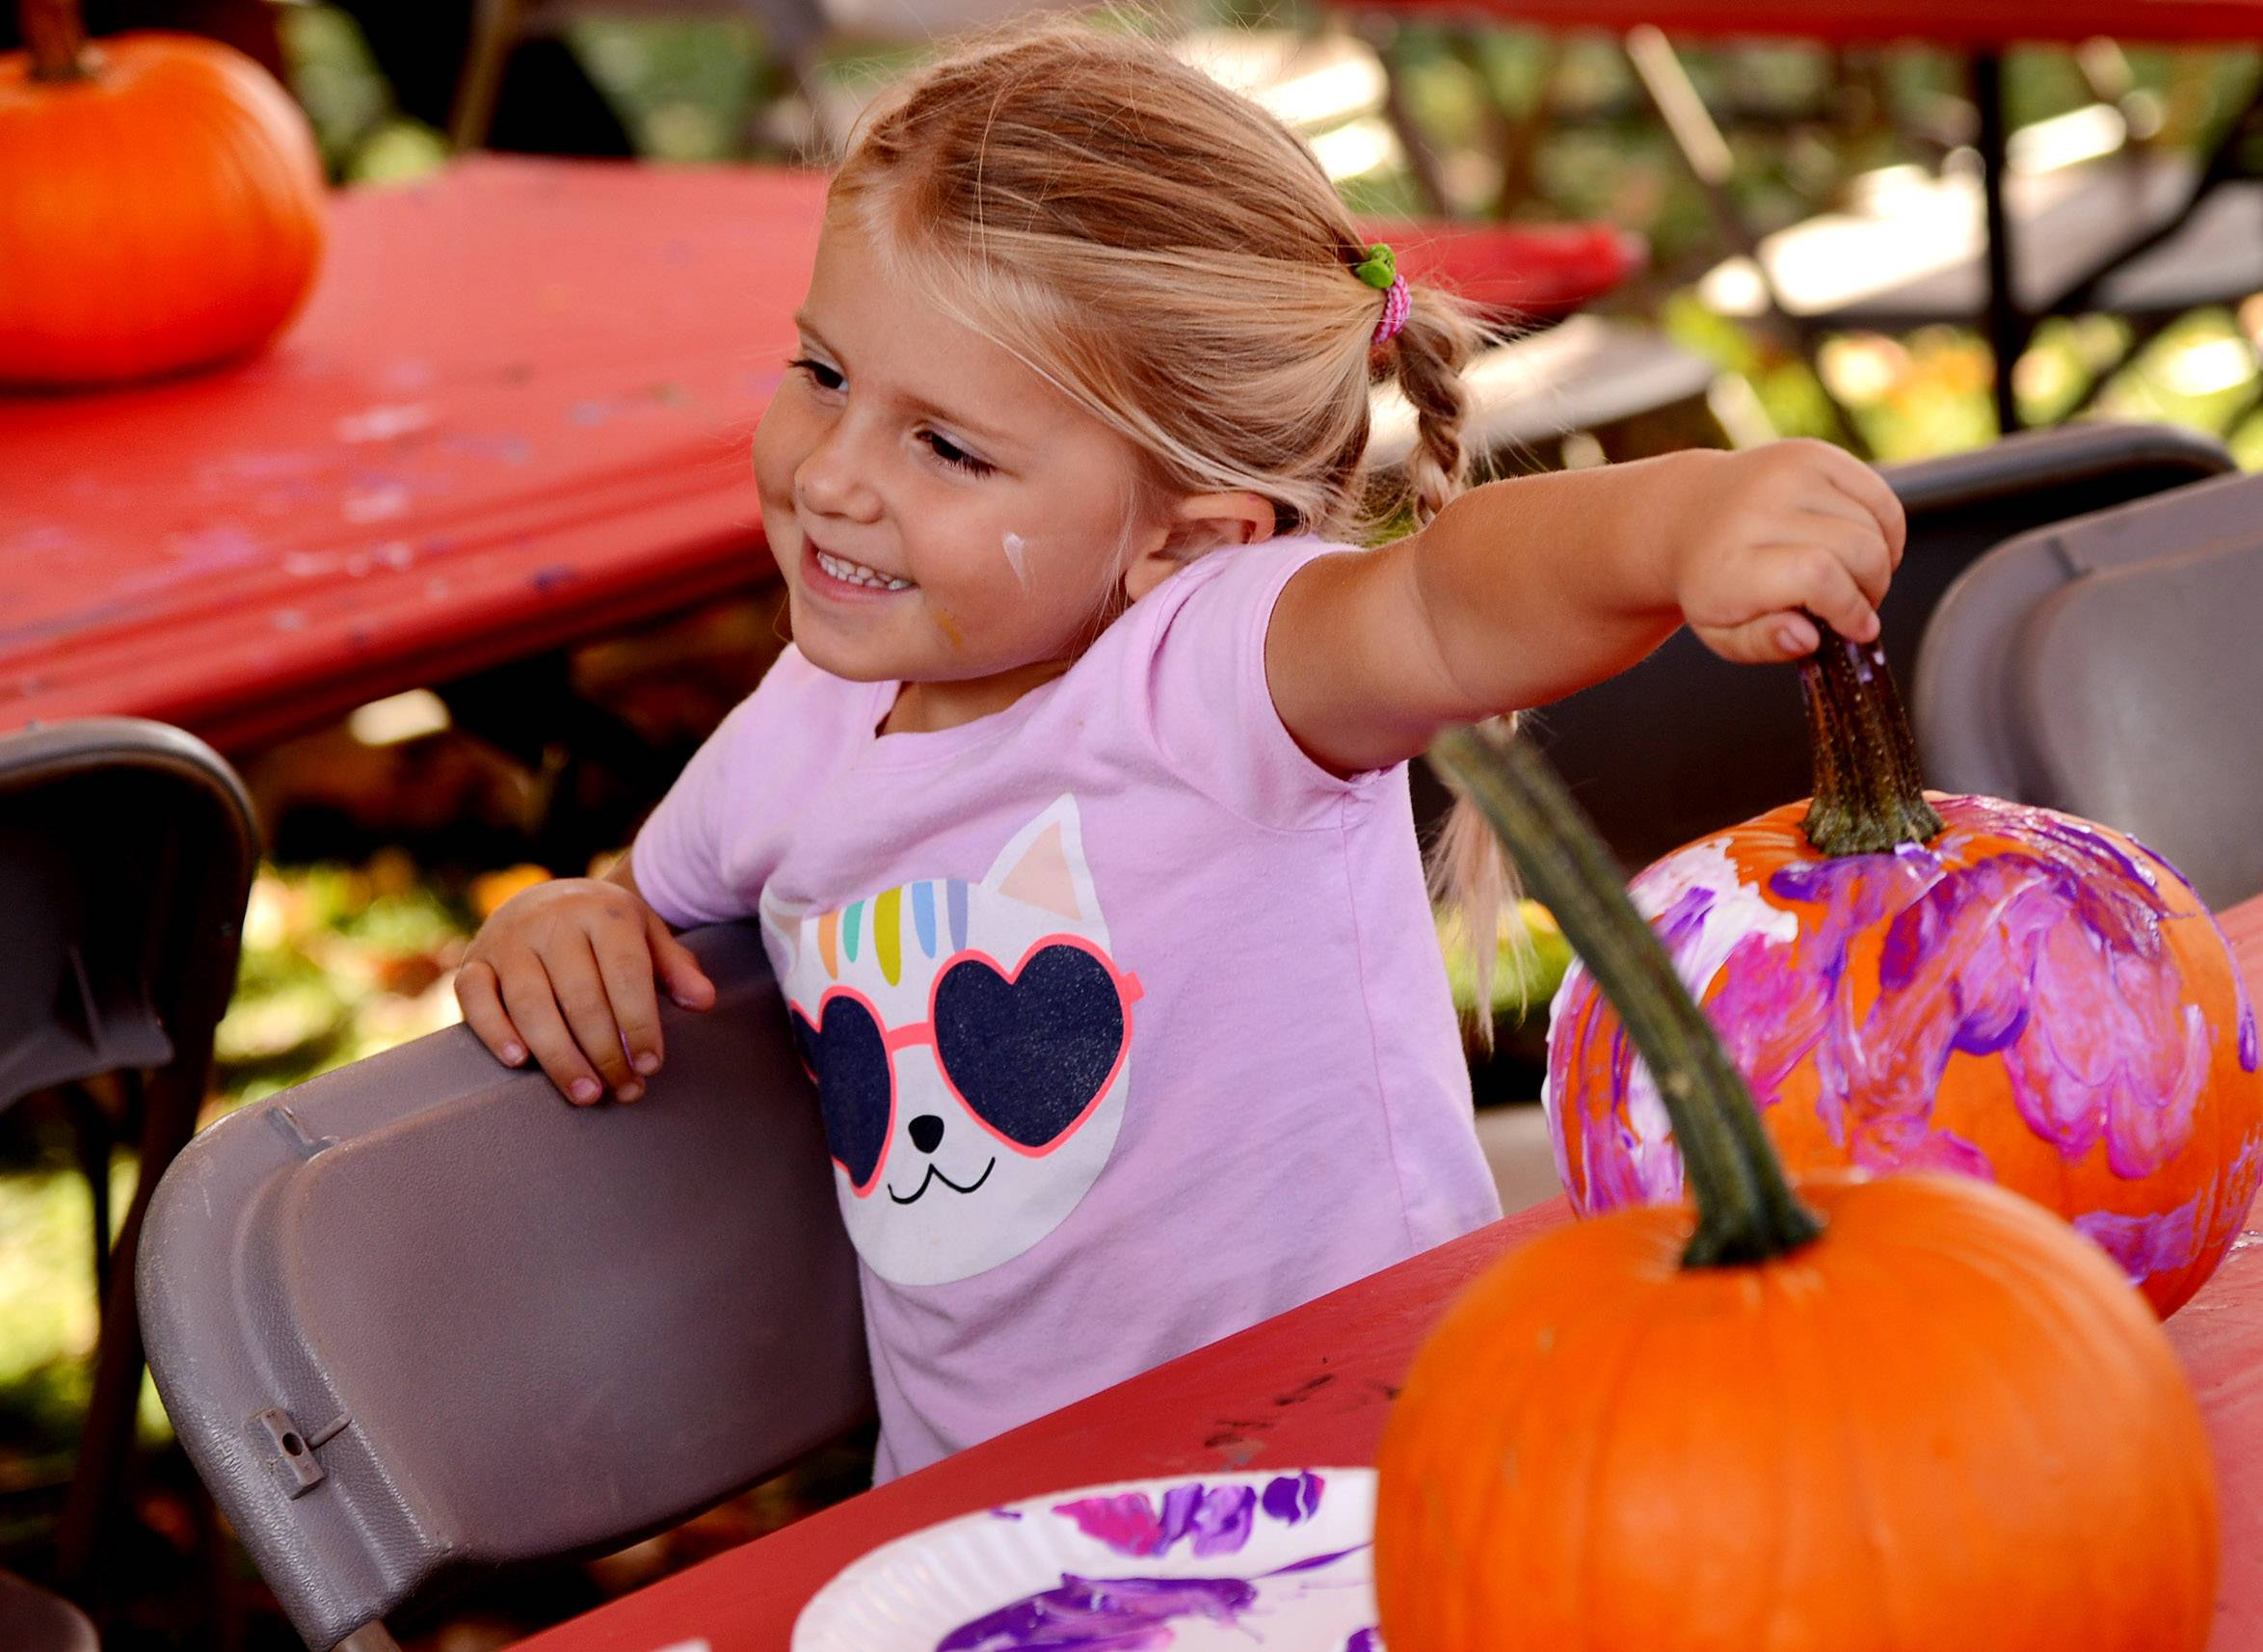 Eliana Collins, 4, of Barrington shows off the pumpkin she just painted to her dad Mike Collins, as fall enthusiasts flocked Saturday to Barrington's 17th annual Scarecrow Festival.